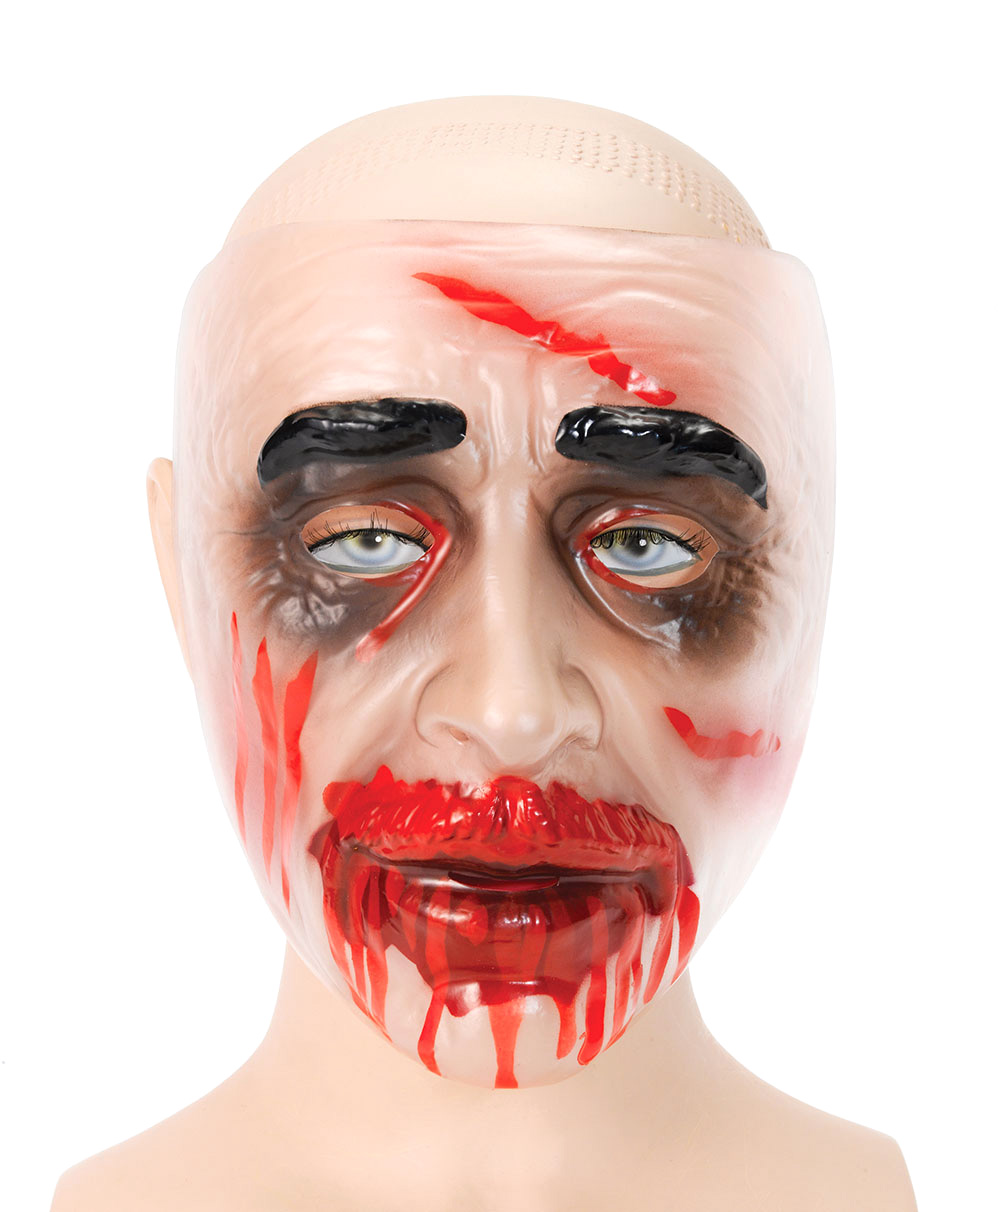 Zombiemask Transparent Man